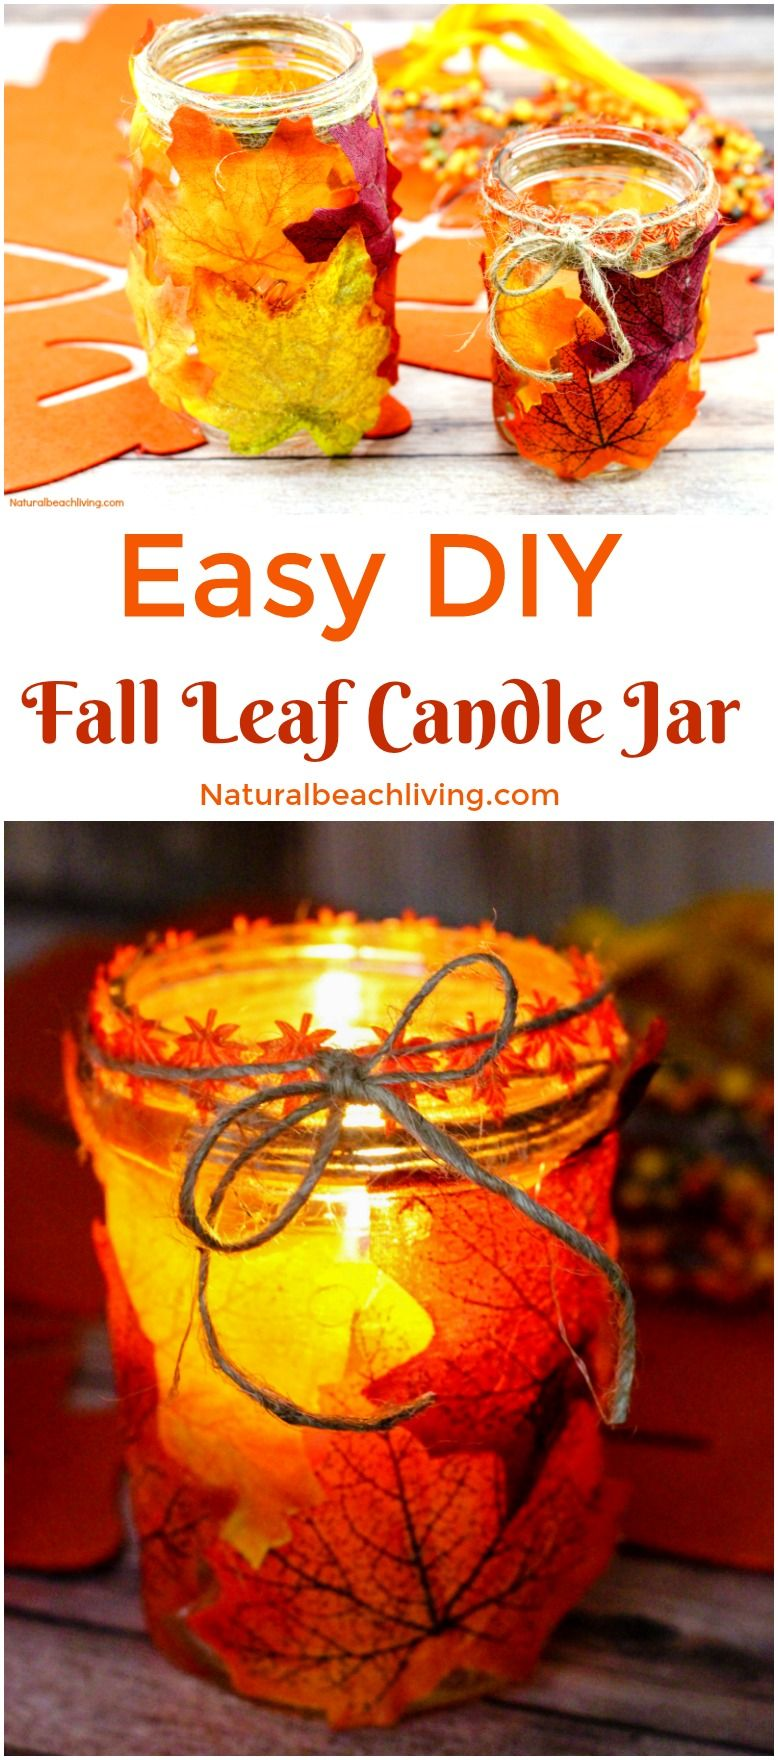 26+ Simple autumn crafts to make for adults information